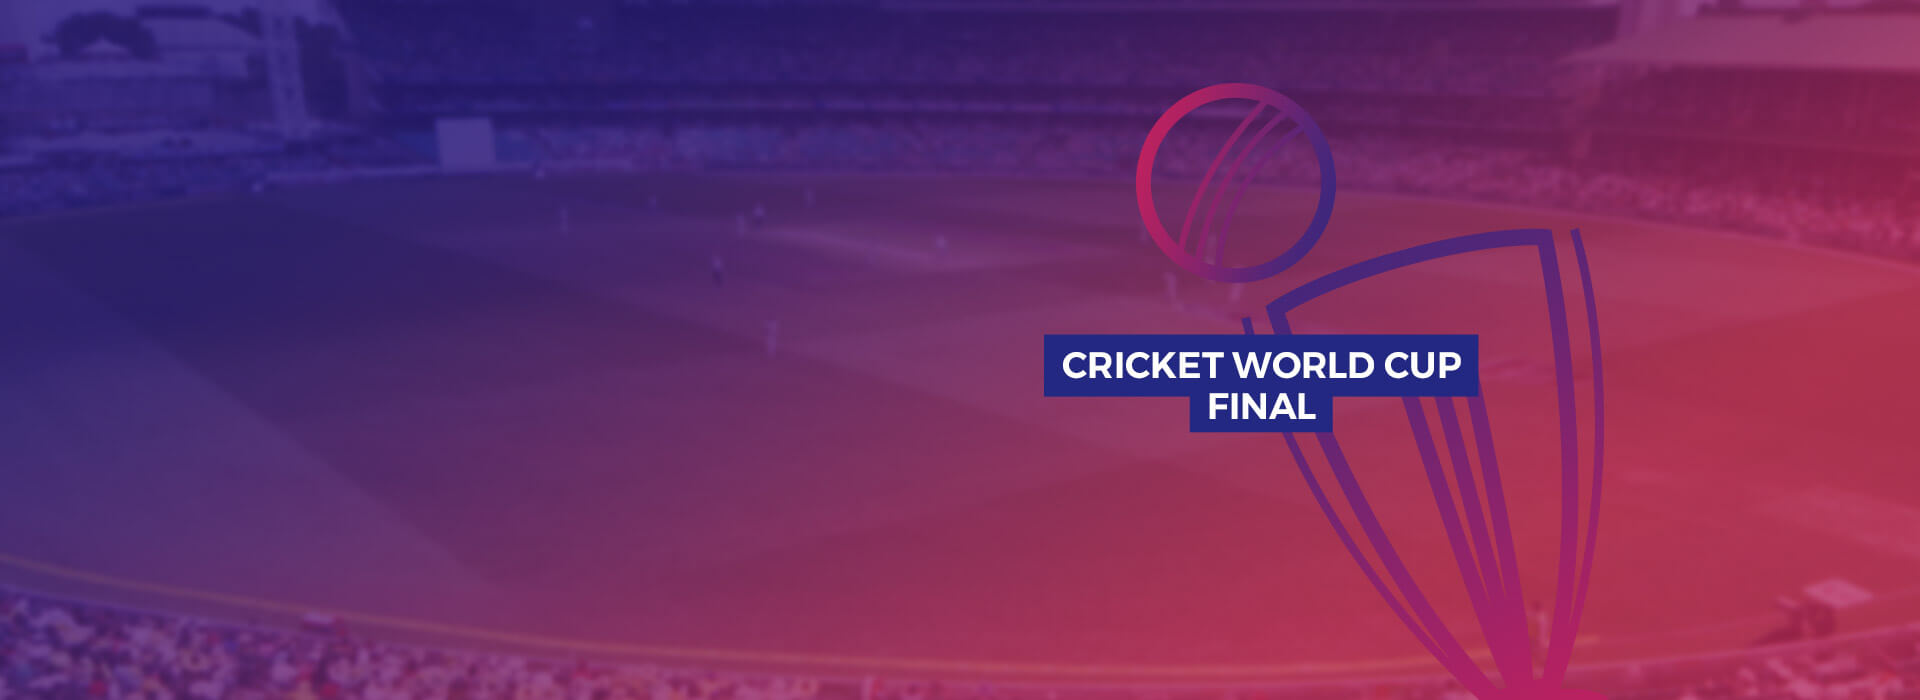 New Zealand vs England: Cricket World Cup Final Betting Preview